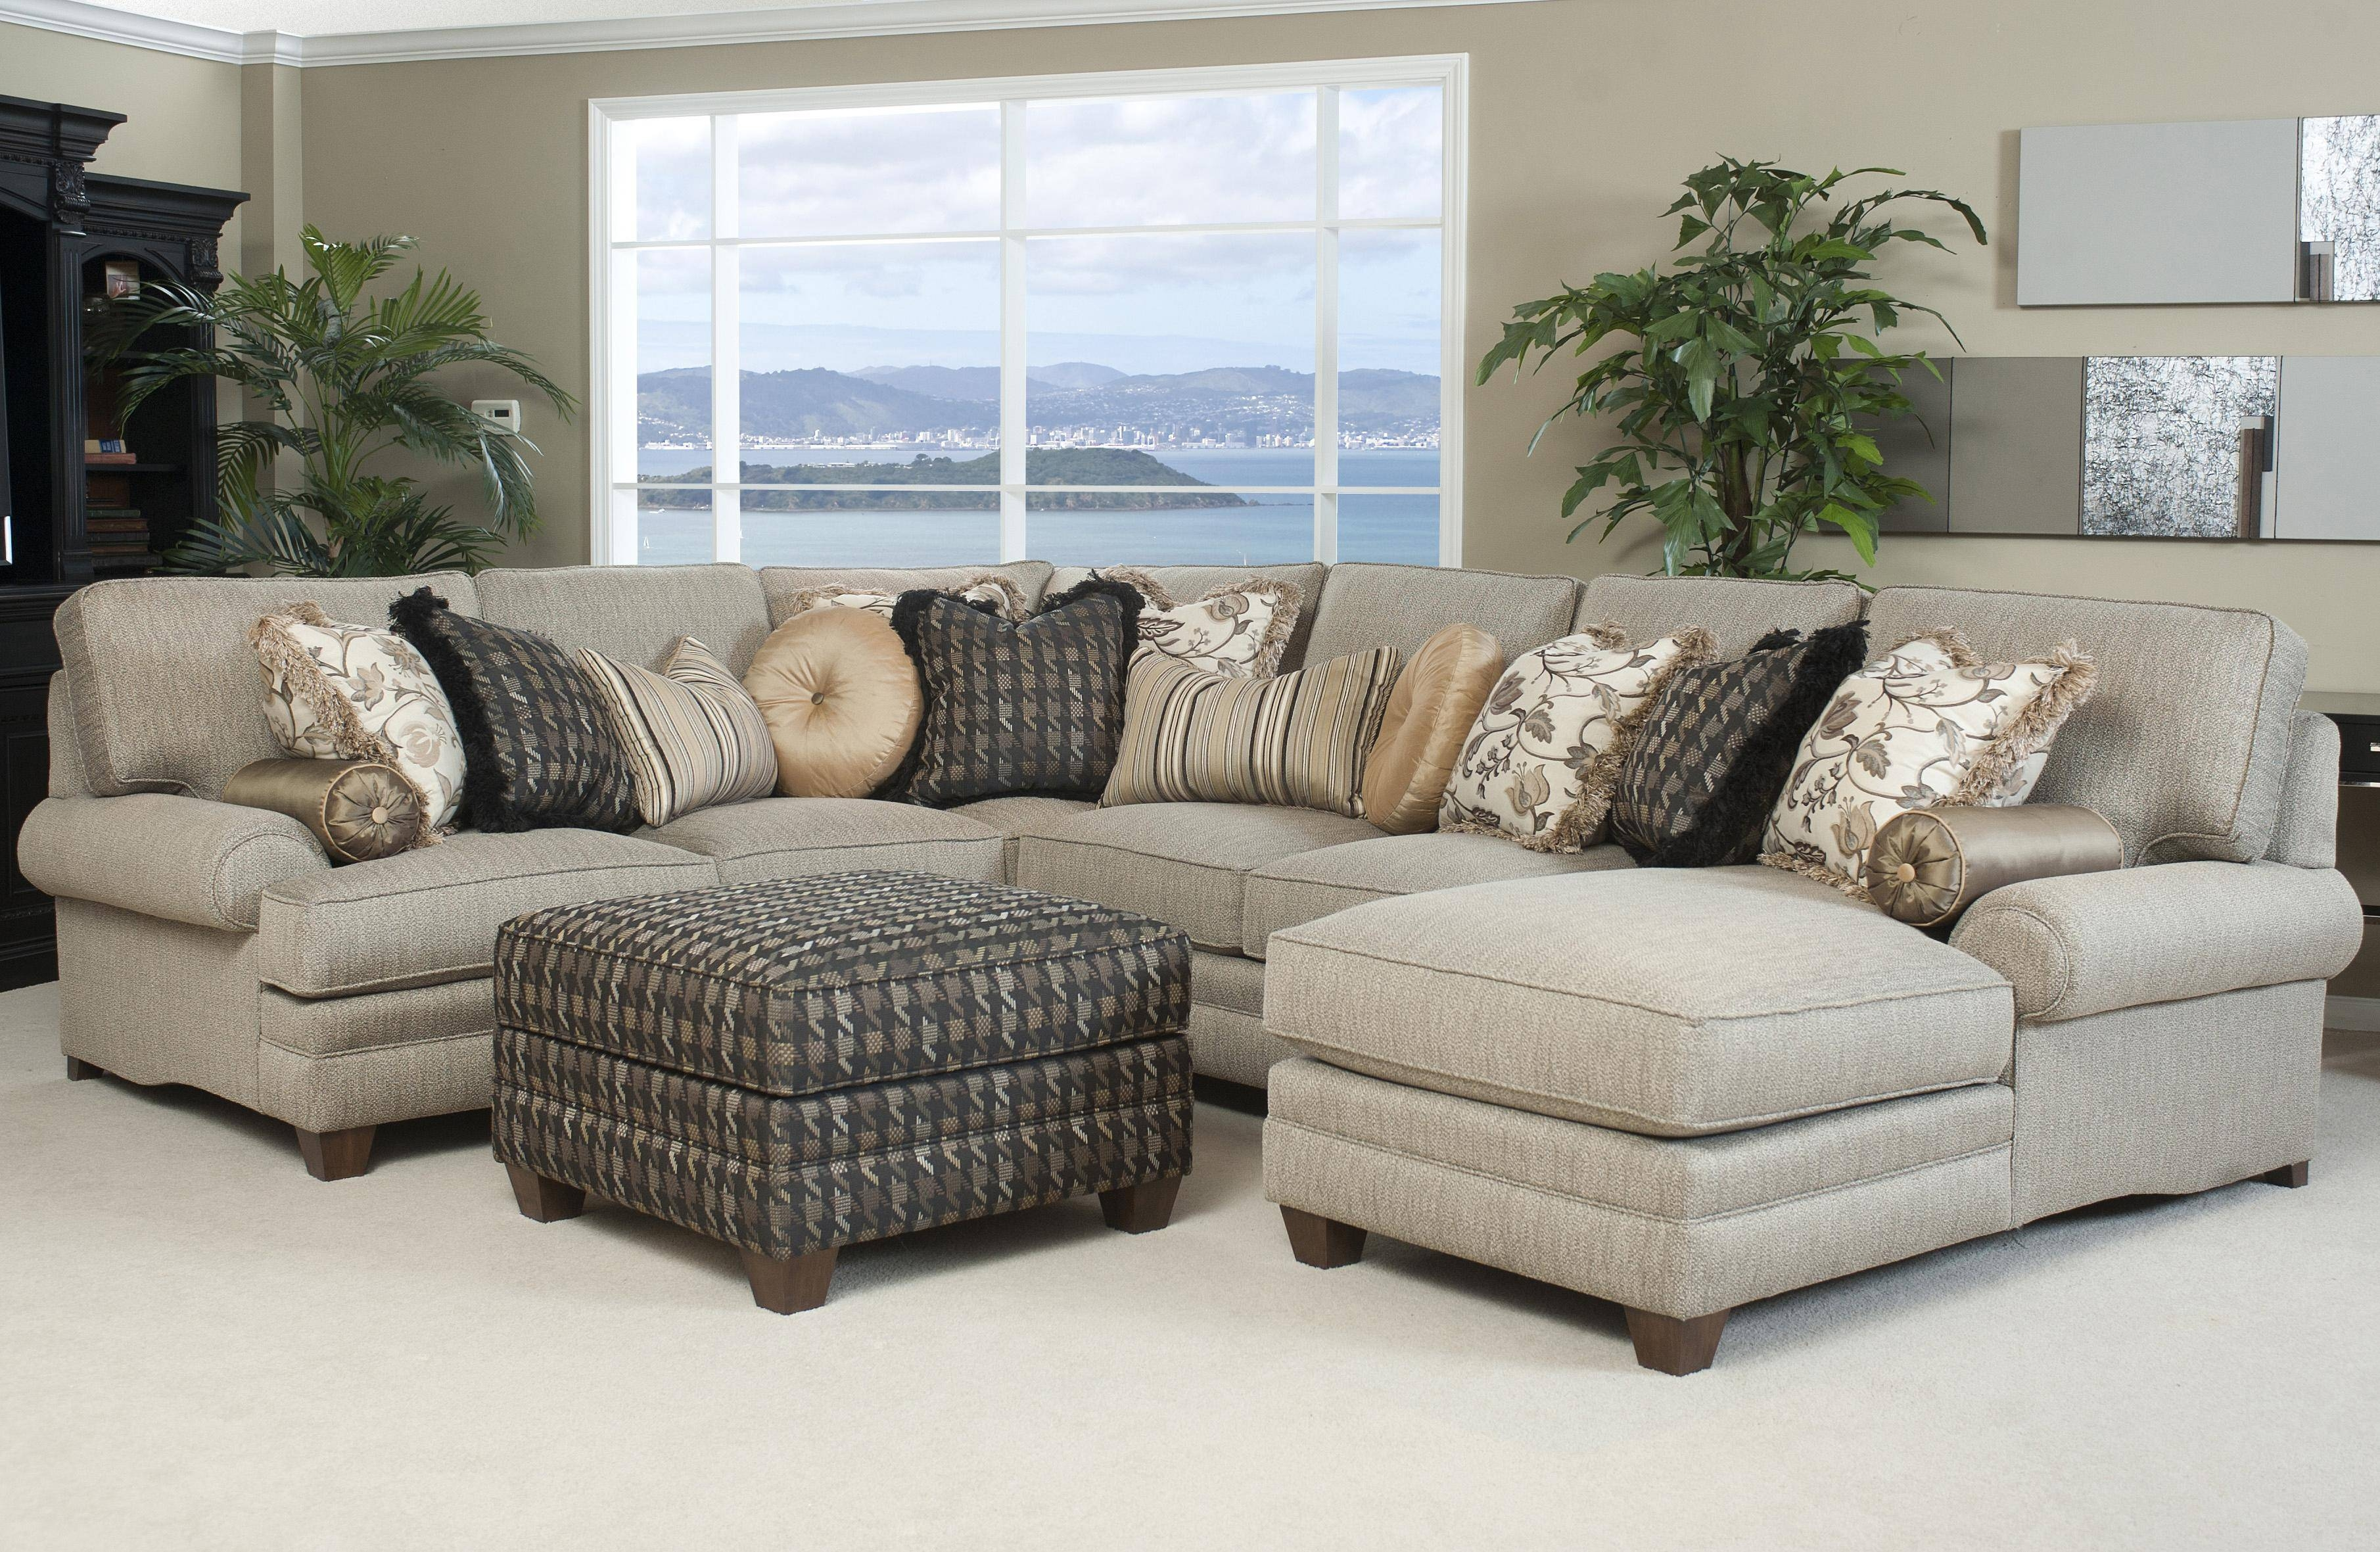 Epic Sofa Sectionals With Chaise 28 For Your Jcpenney Sectional With Regard To Jcpenney Sectional Sofas (View 5 of 15)